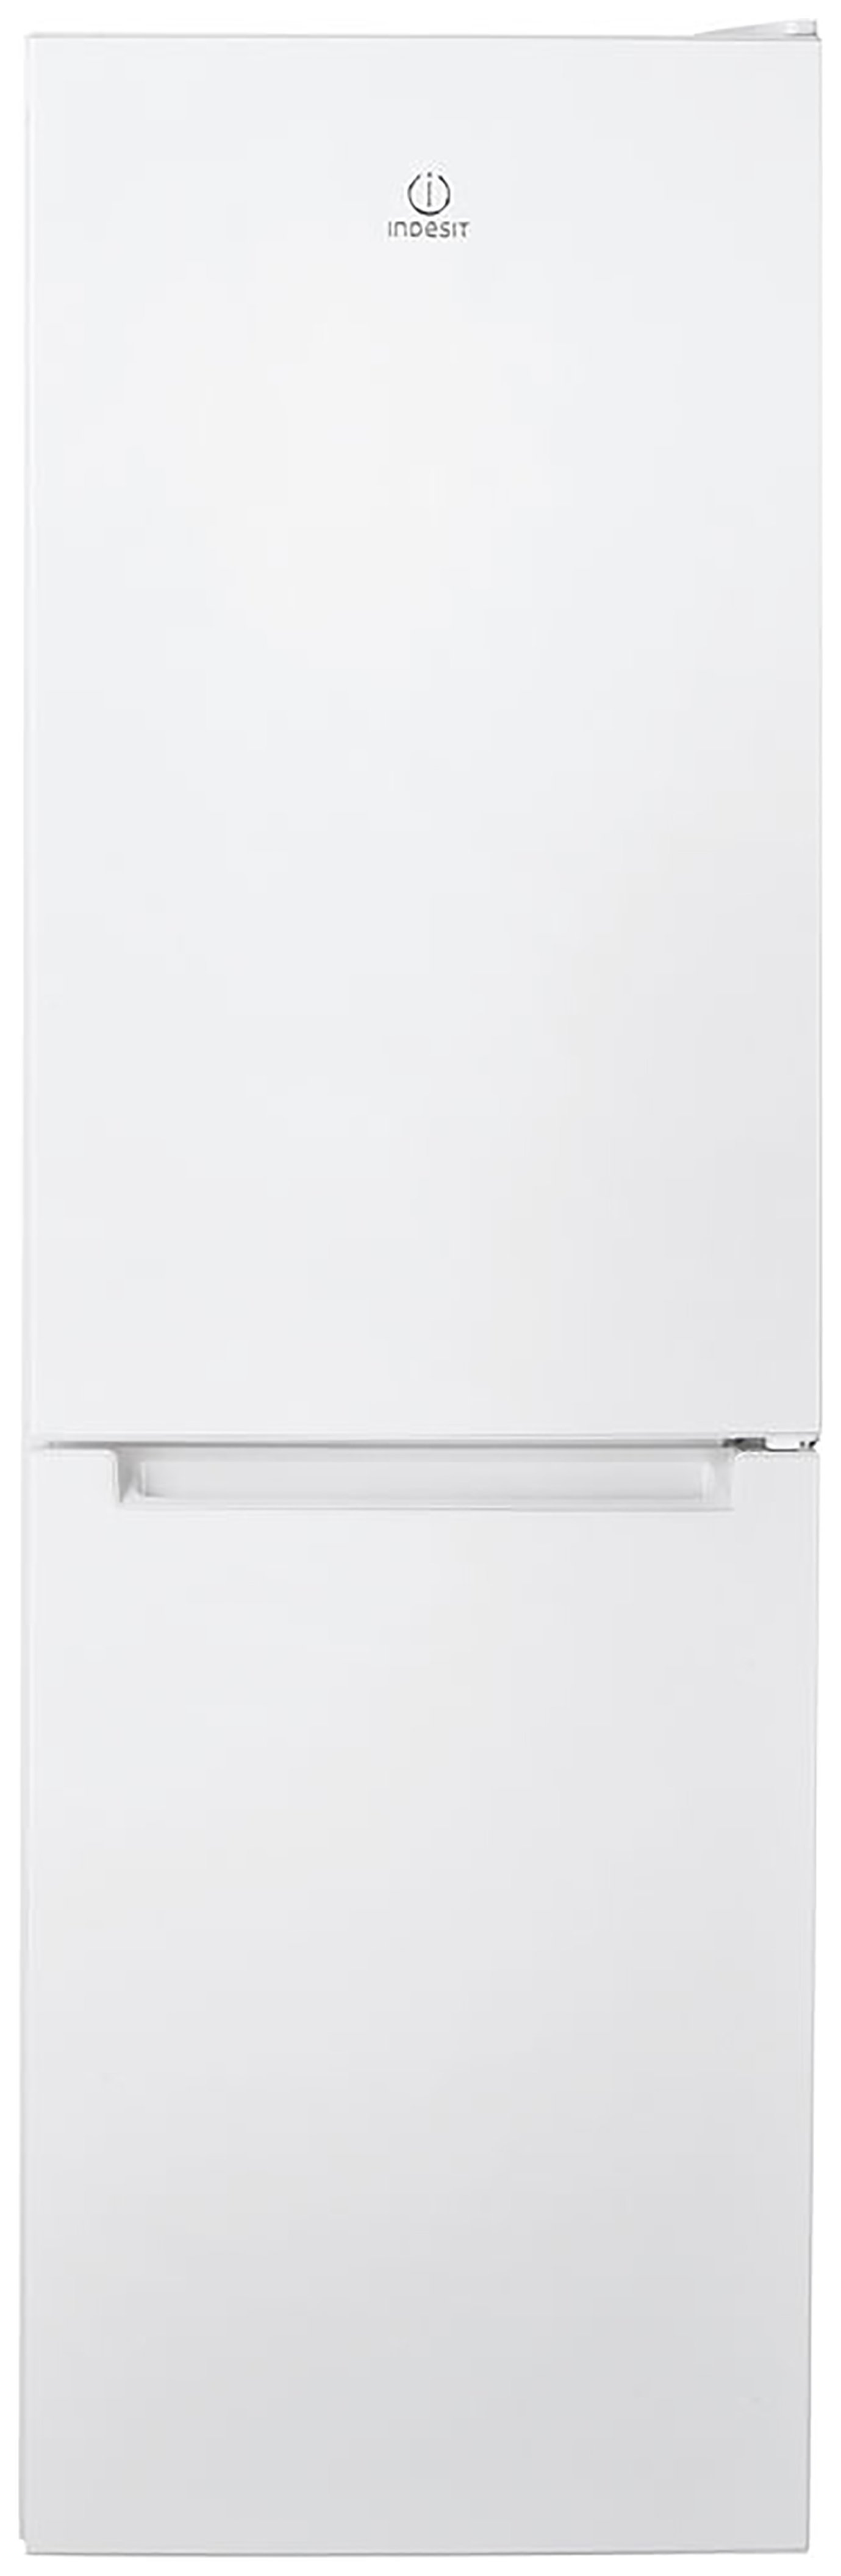 Indesit LR8S1W Fridge Freezer - White